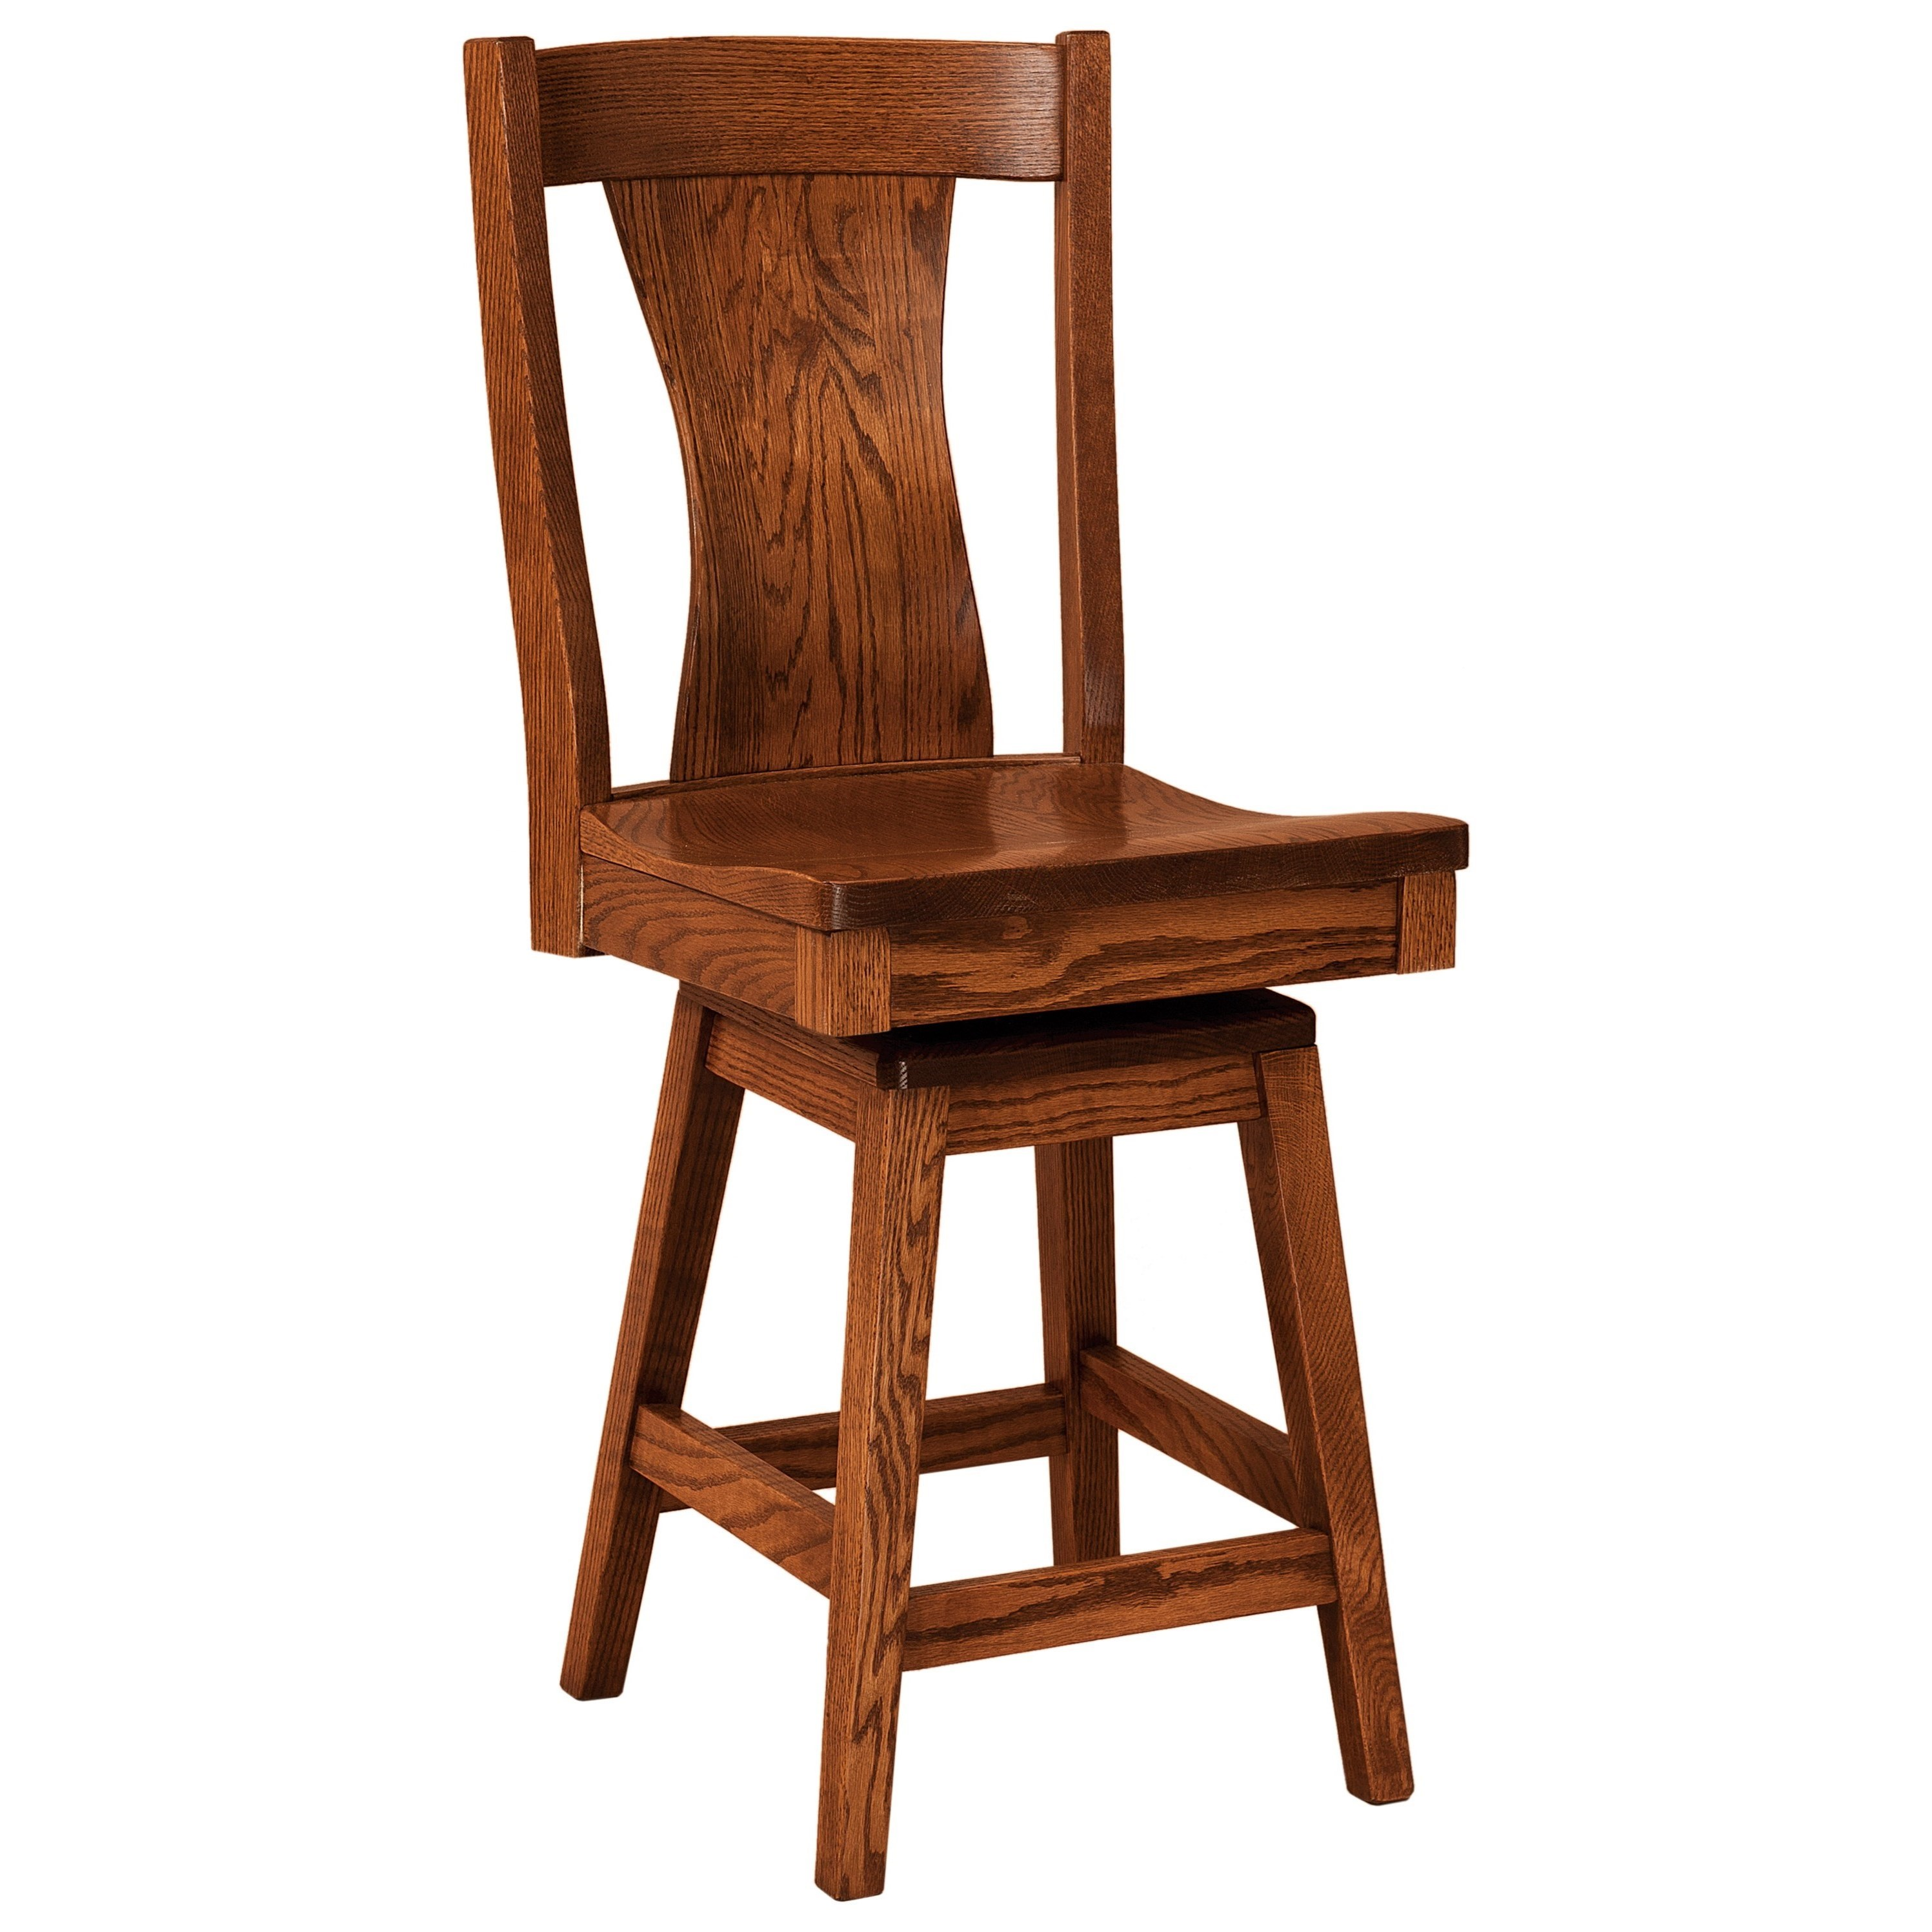 Westin Swivel Counter Height Stool - Wood Seat by F&N Woodworking at Mueller Furniture